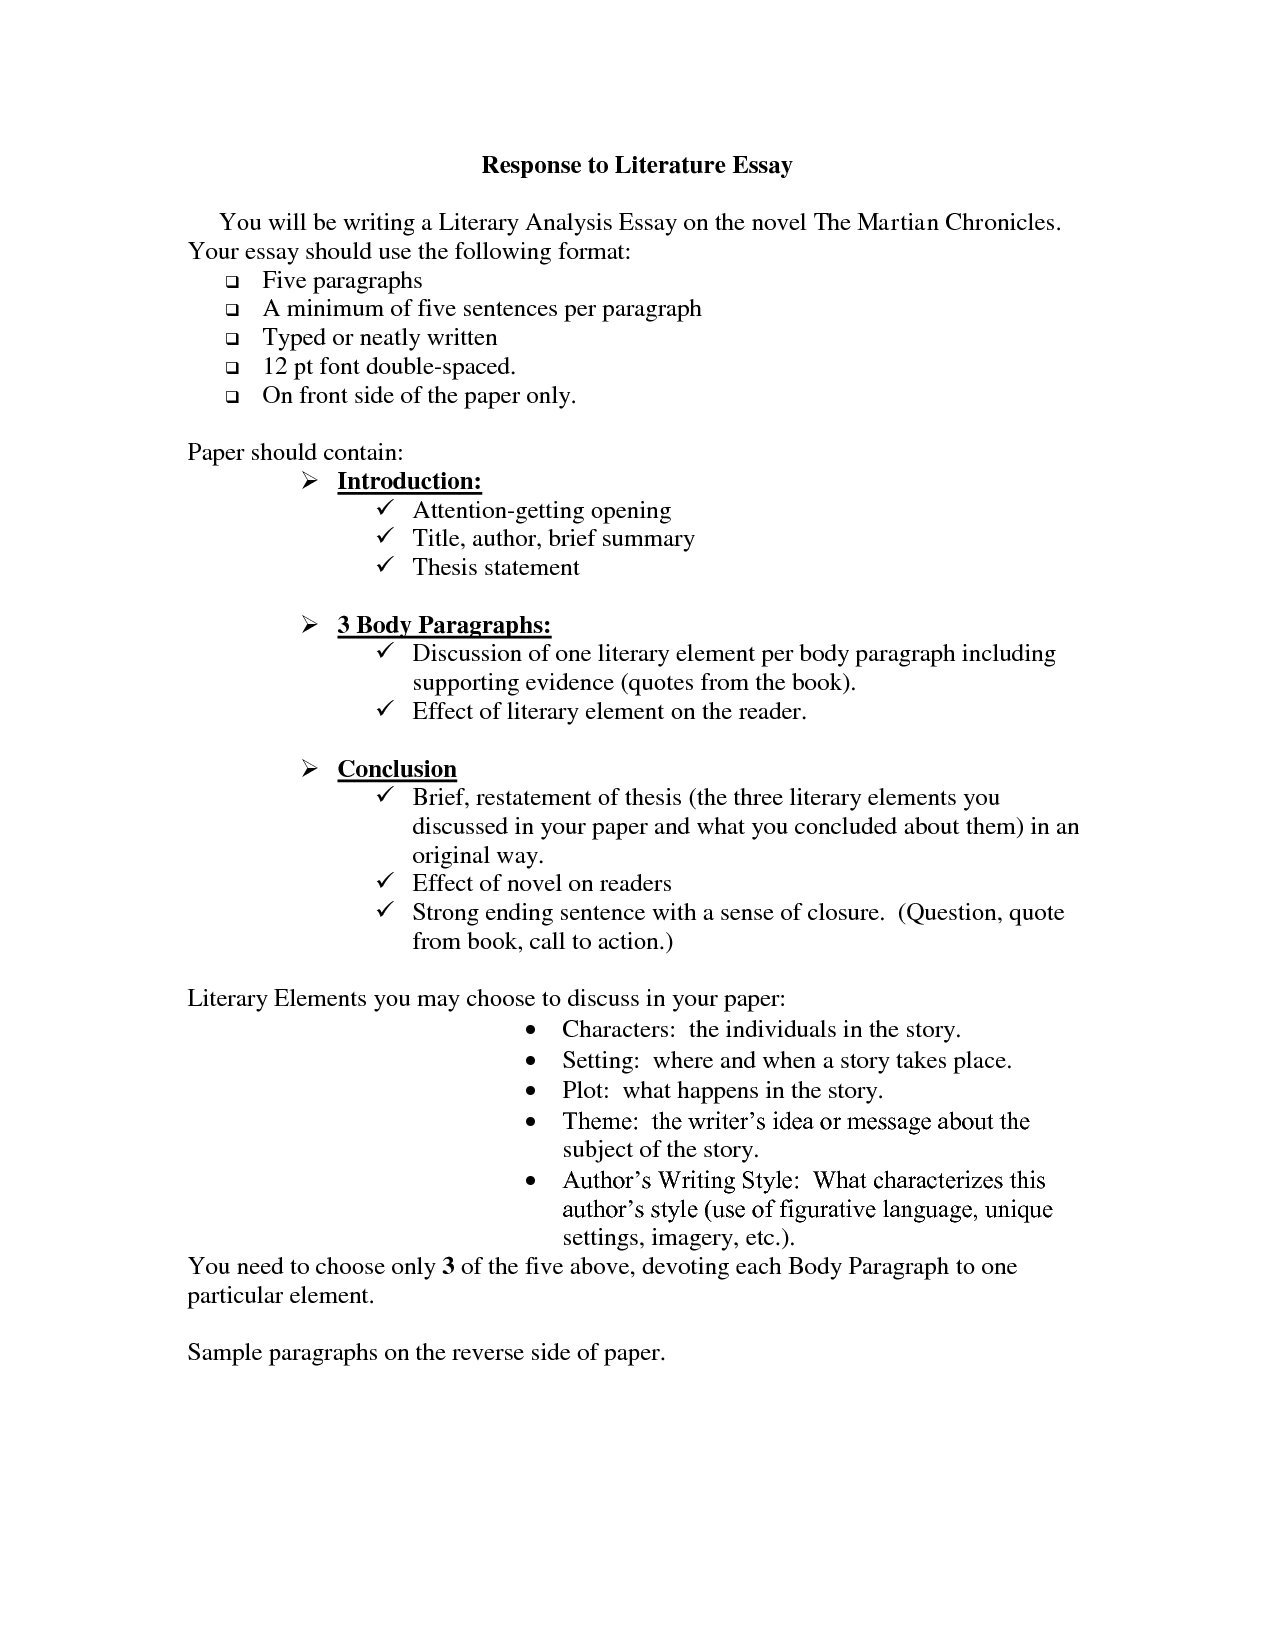 006 Essay Example Brilliant Ideas Of Resume Cv Cover Letter Poetry Reflection Paper Poem Parison Creative Explication Formidable Trifles Topics Feminism Full